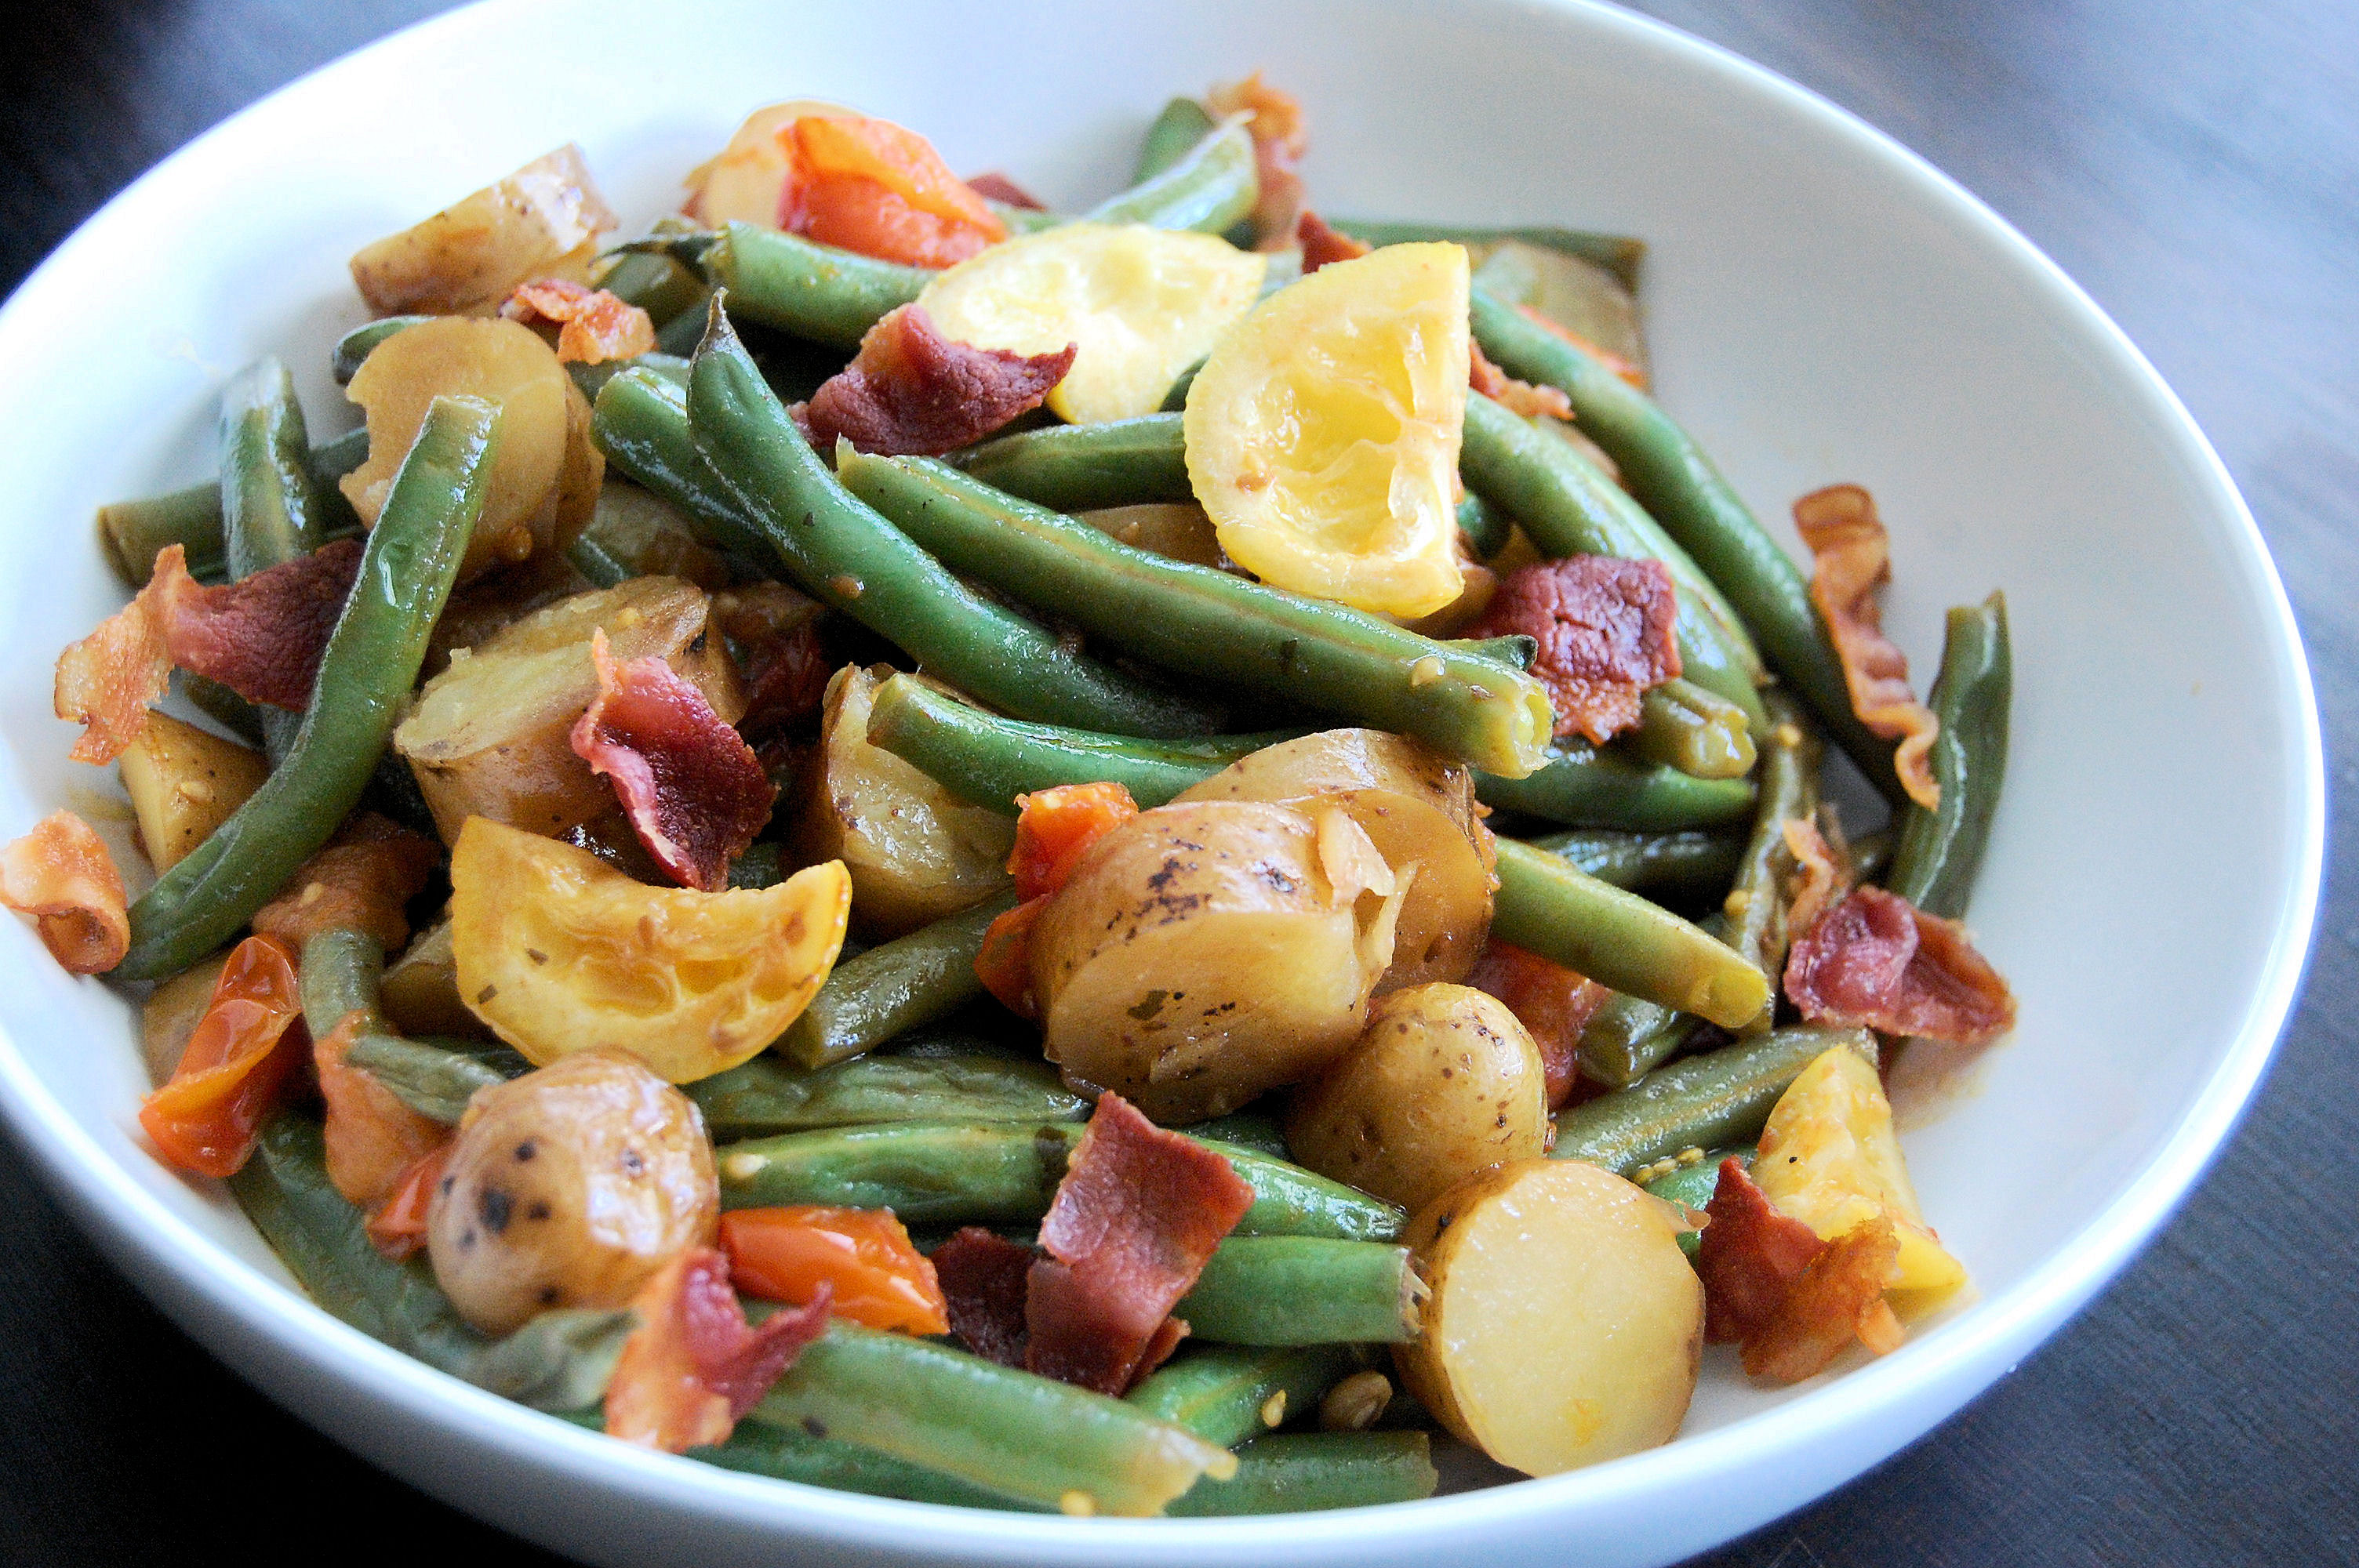 grilled-lemon-green-bean-and-tomato-salad-with-pacific-rim-ginger-sauce